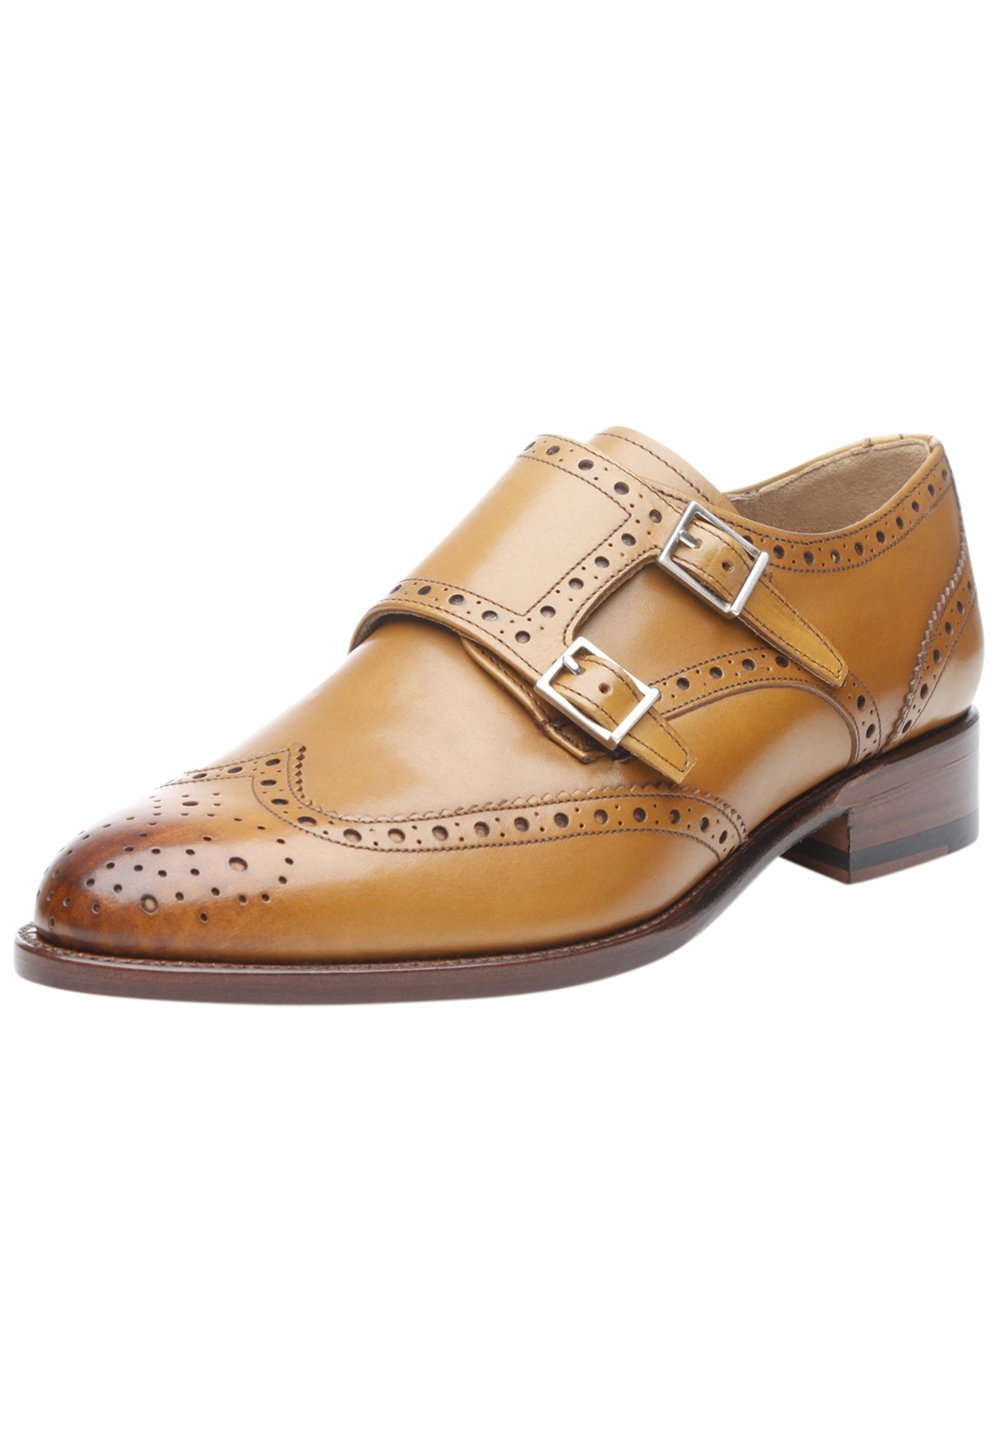 SHOEPASSION 1110 - - Cognac No. 1110 Cognac 0585b10 - fast-weightloss-diet.space